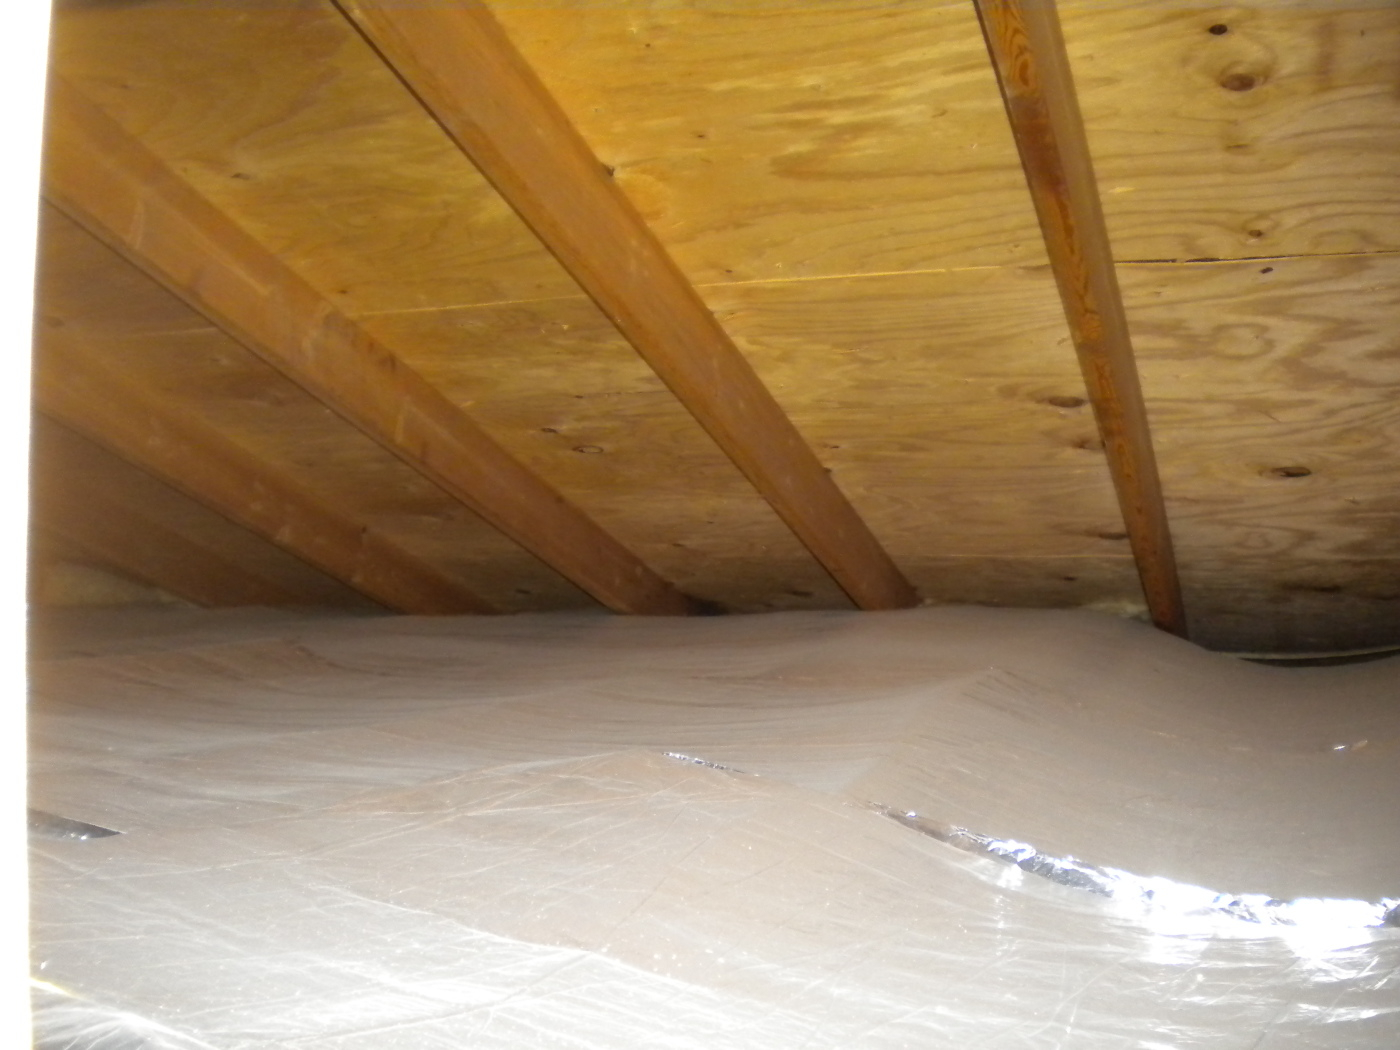 Attic Insulation Foil Blanket Attic Ideas